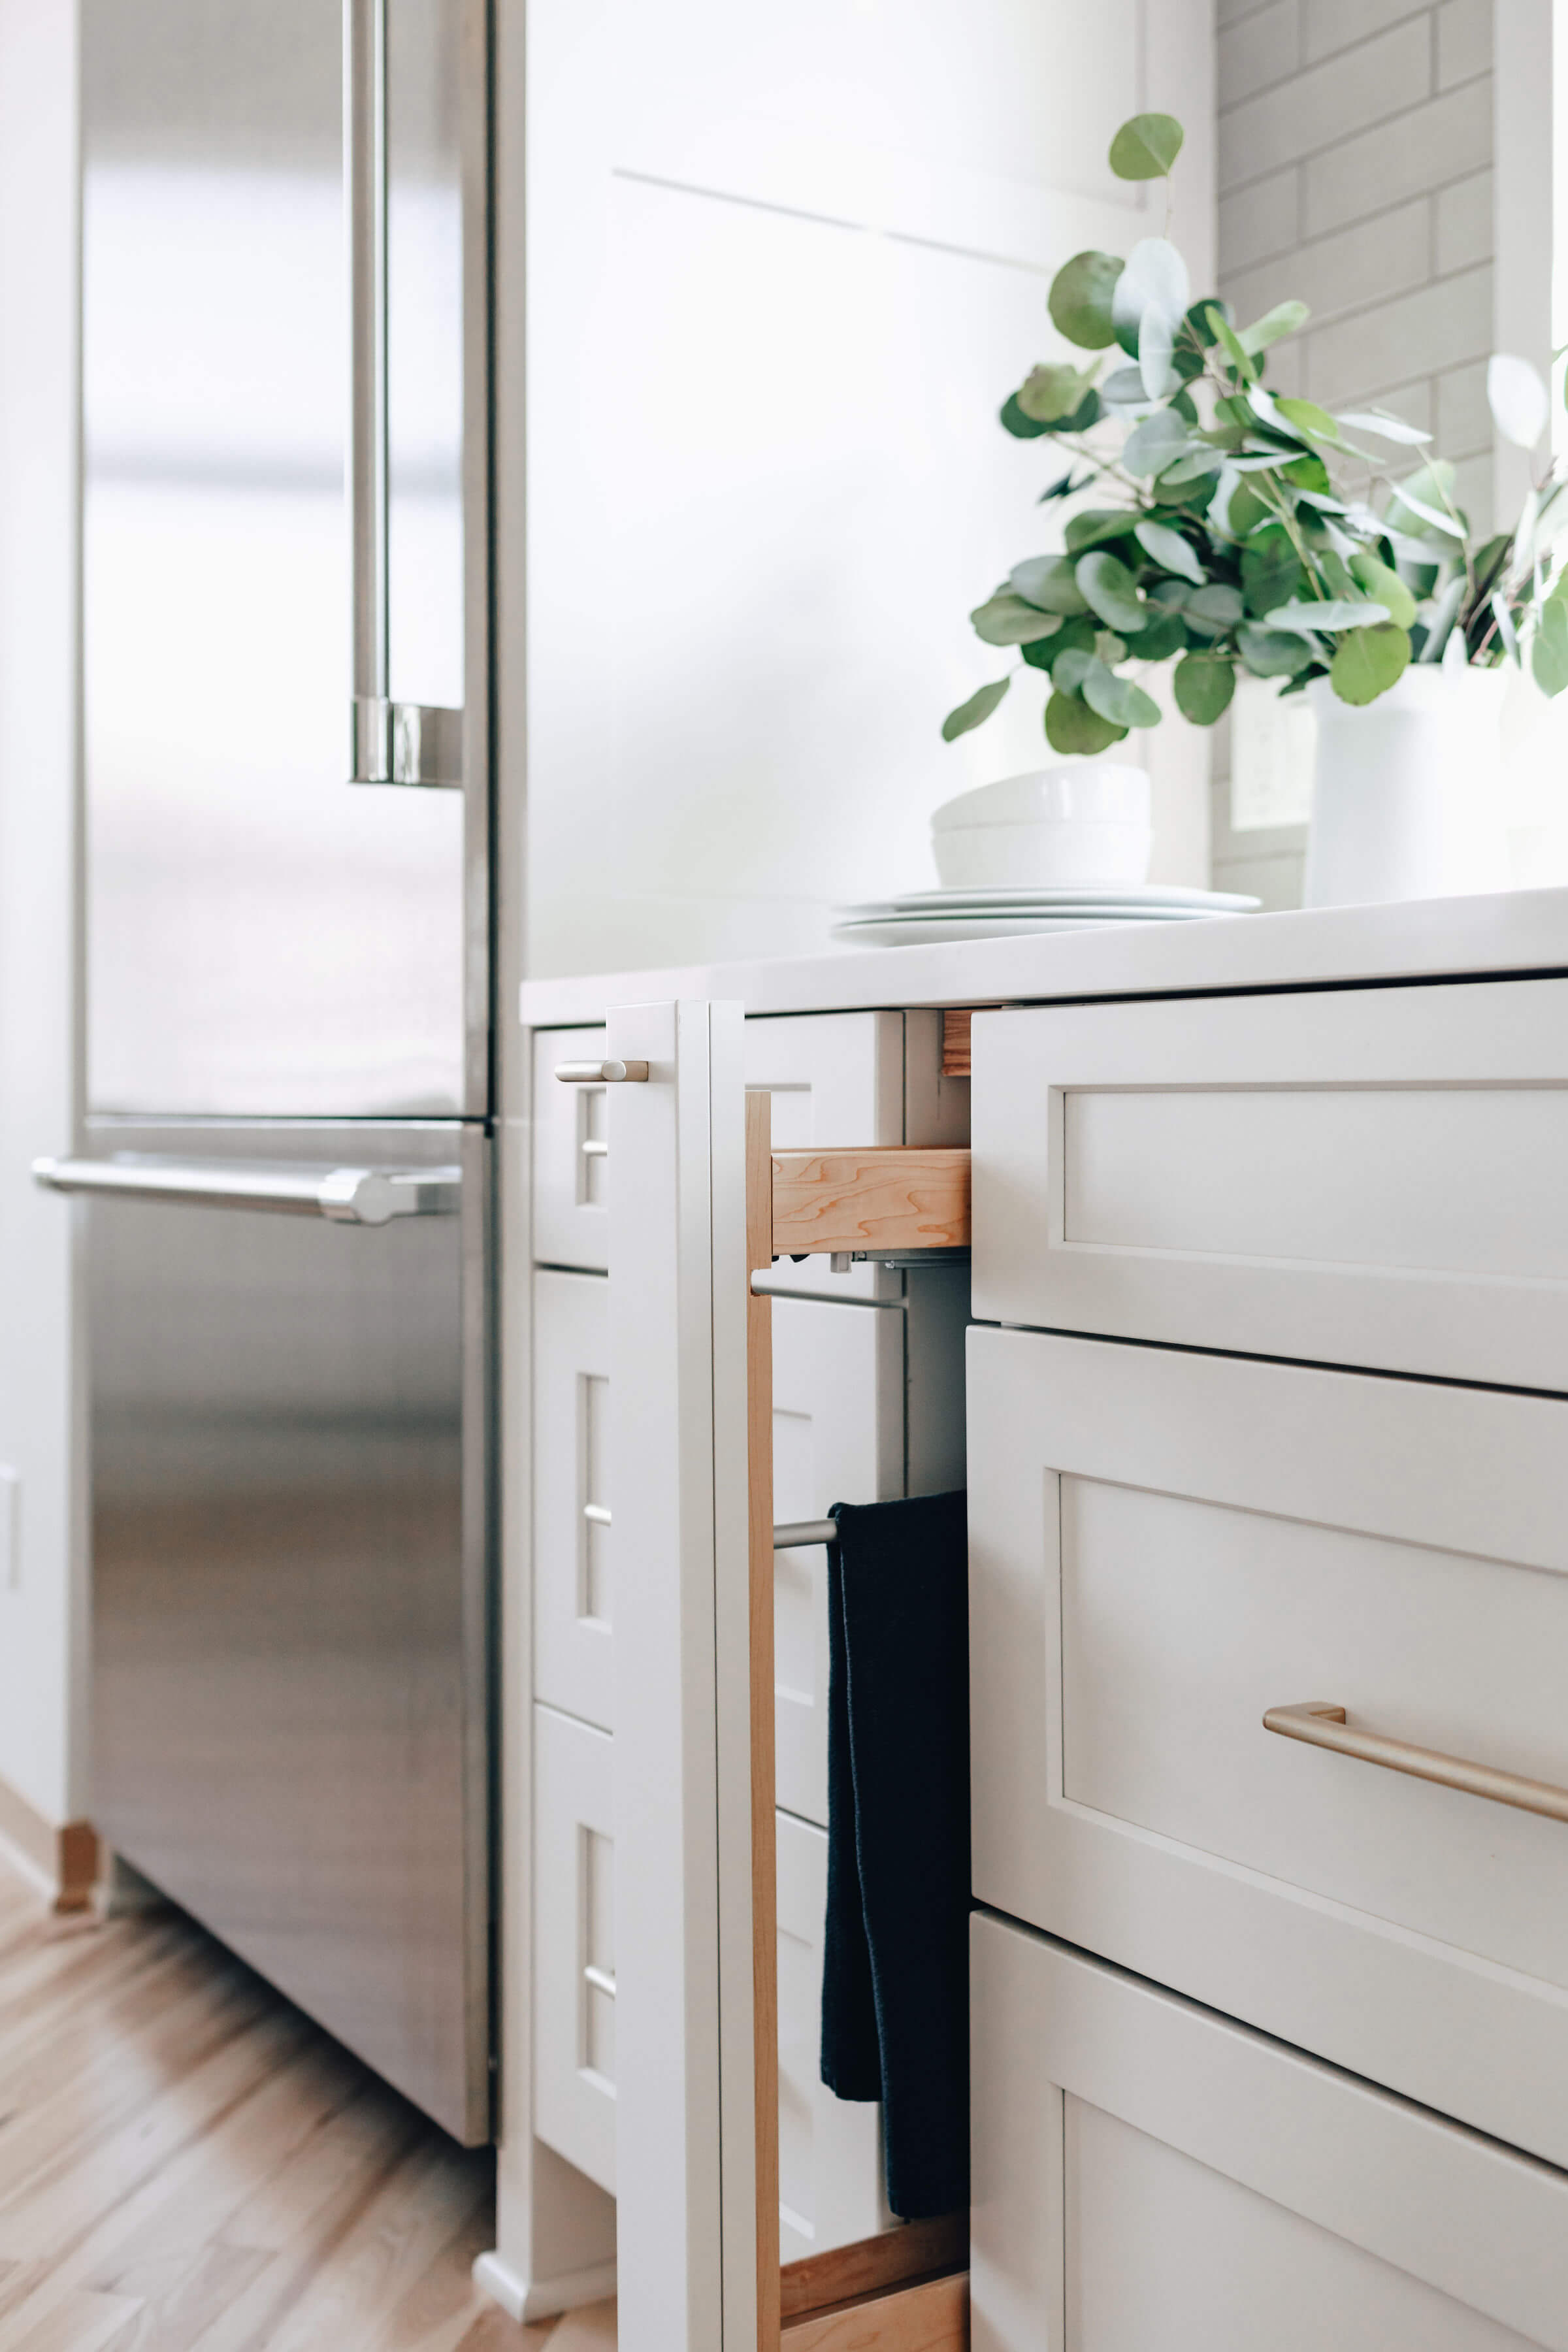 A Pull-Out Towel Rack Cabinet from Dura Supreme Cabinetry